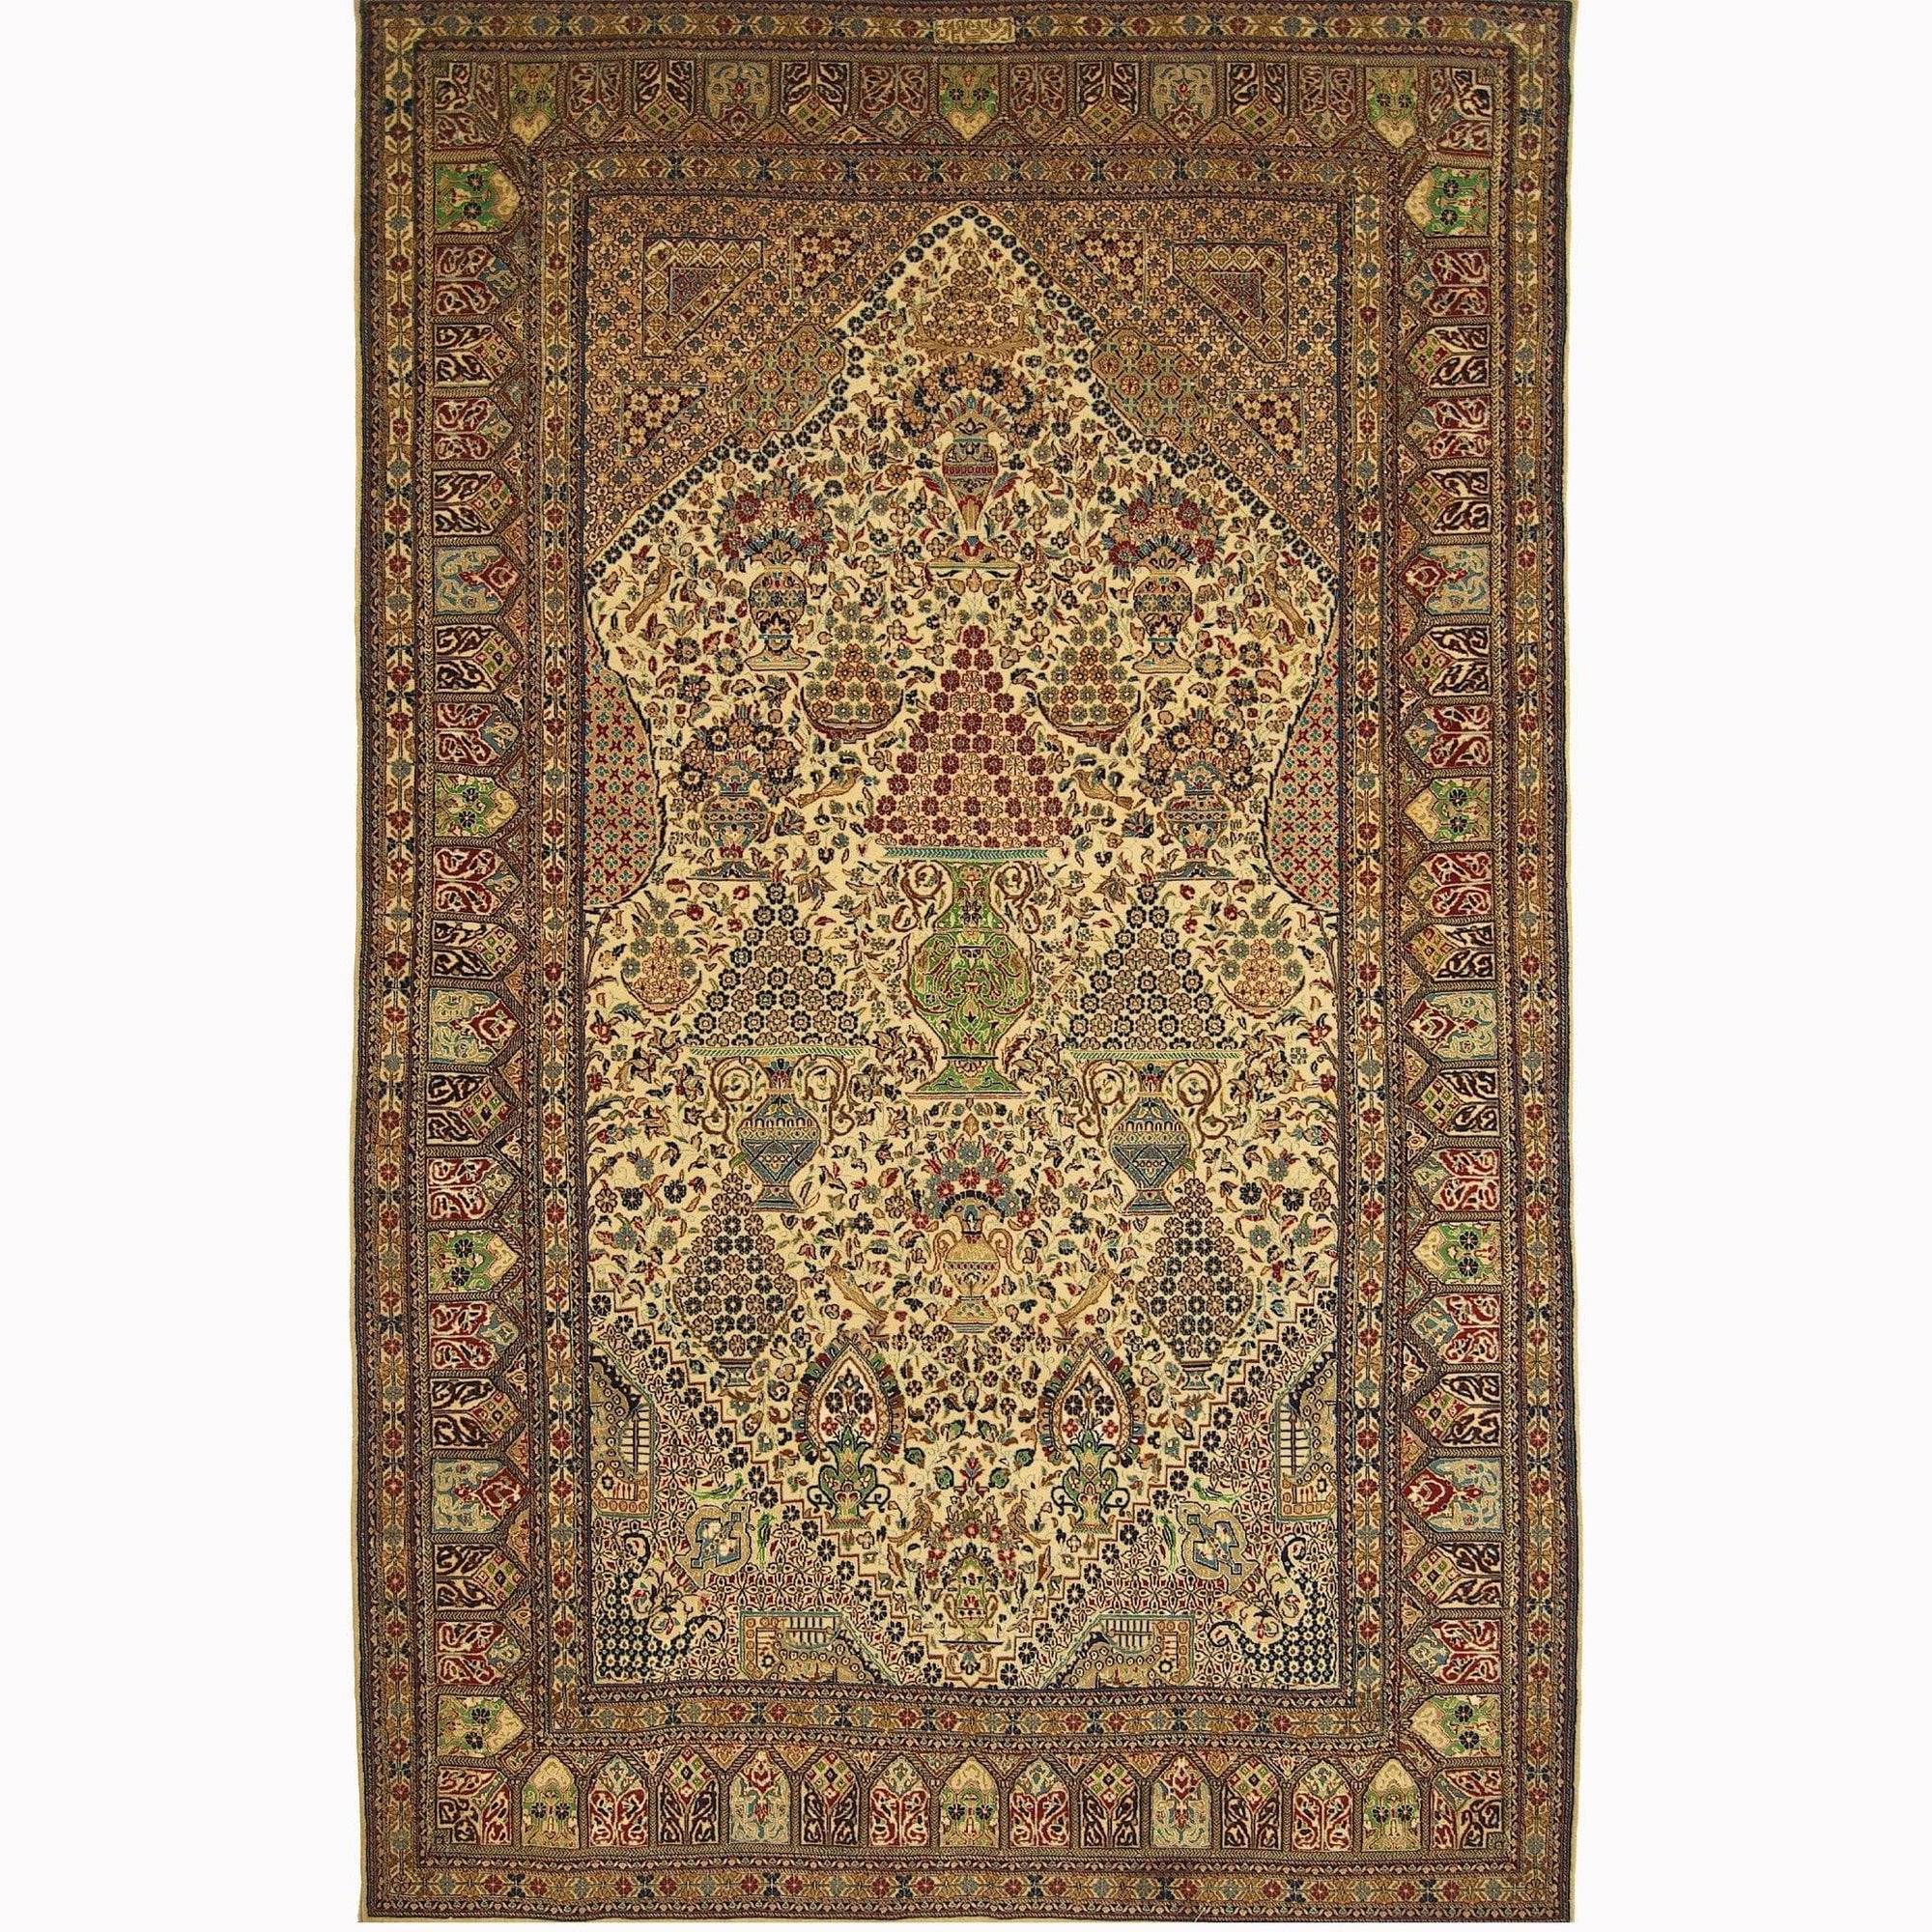 Genuine Fine Hand-knotted Persian Wool and Silk Nain Rug ( SIGNED HABIBIAN ) 158cm x 248cm Persian-Rug | House-of-Haghi | NewMarket | Auckland | NZ | Handmade Persian Rugs | Hand Knotted Persian Rugs